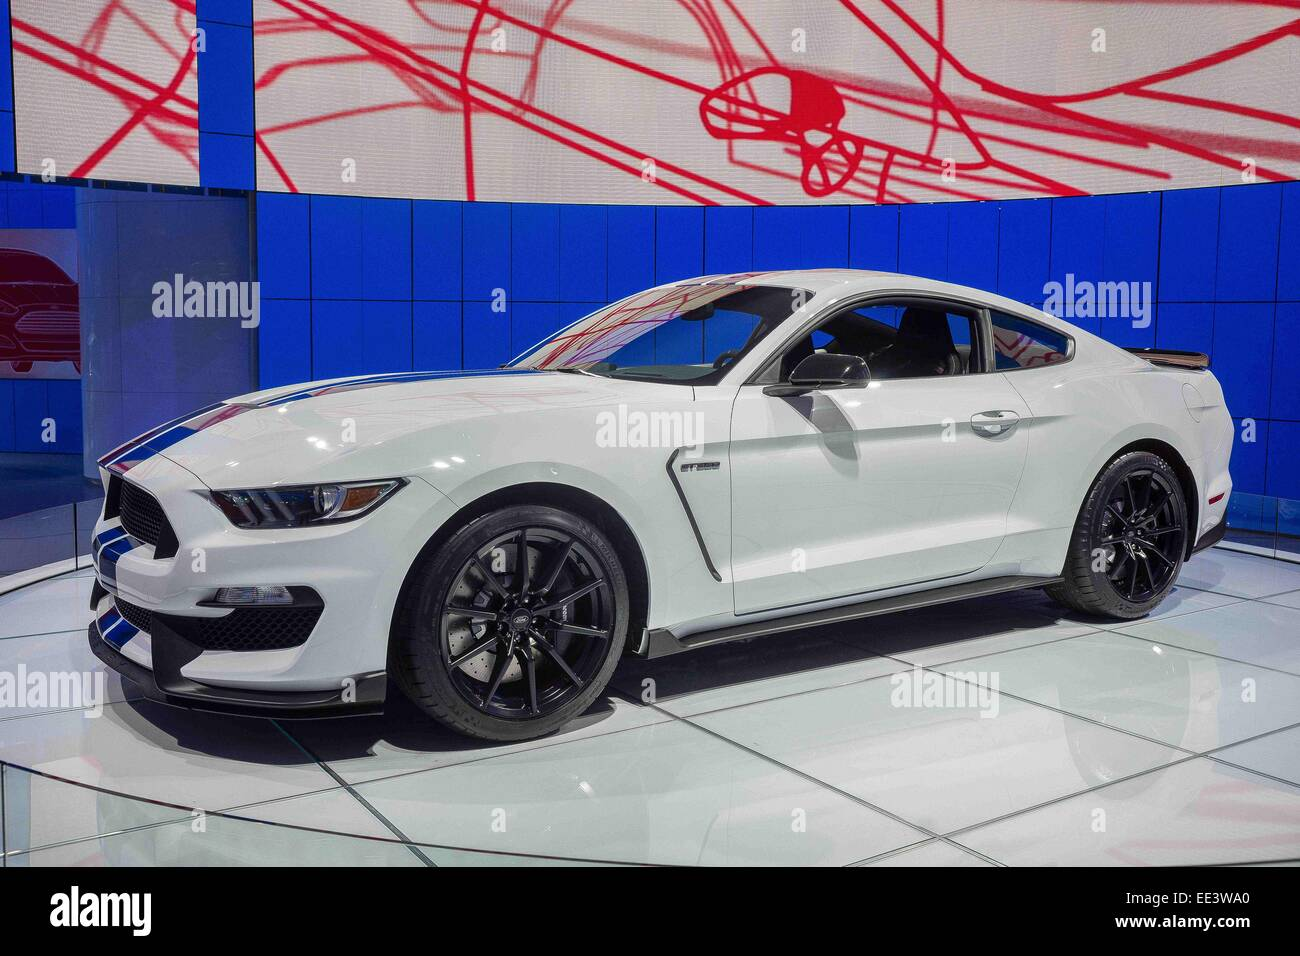 Detroit Mi Usa 12th Jan 2015 Ford Launches The New Mustang Gt. 12th Jan 2015 Ford Launches The New Mustang Gt 350 At North American International Auto Show In Detroit Mi Alexis Simpsonzuma Wirealamy. Ford. 2015 Ford Mustang Wiring At Scoala.co